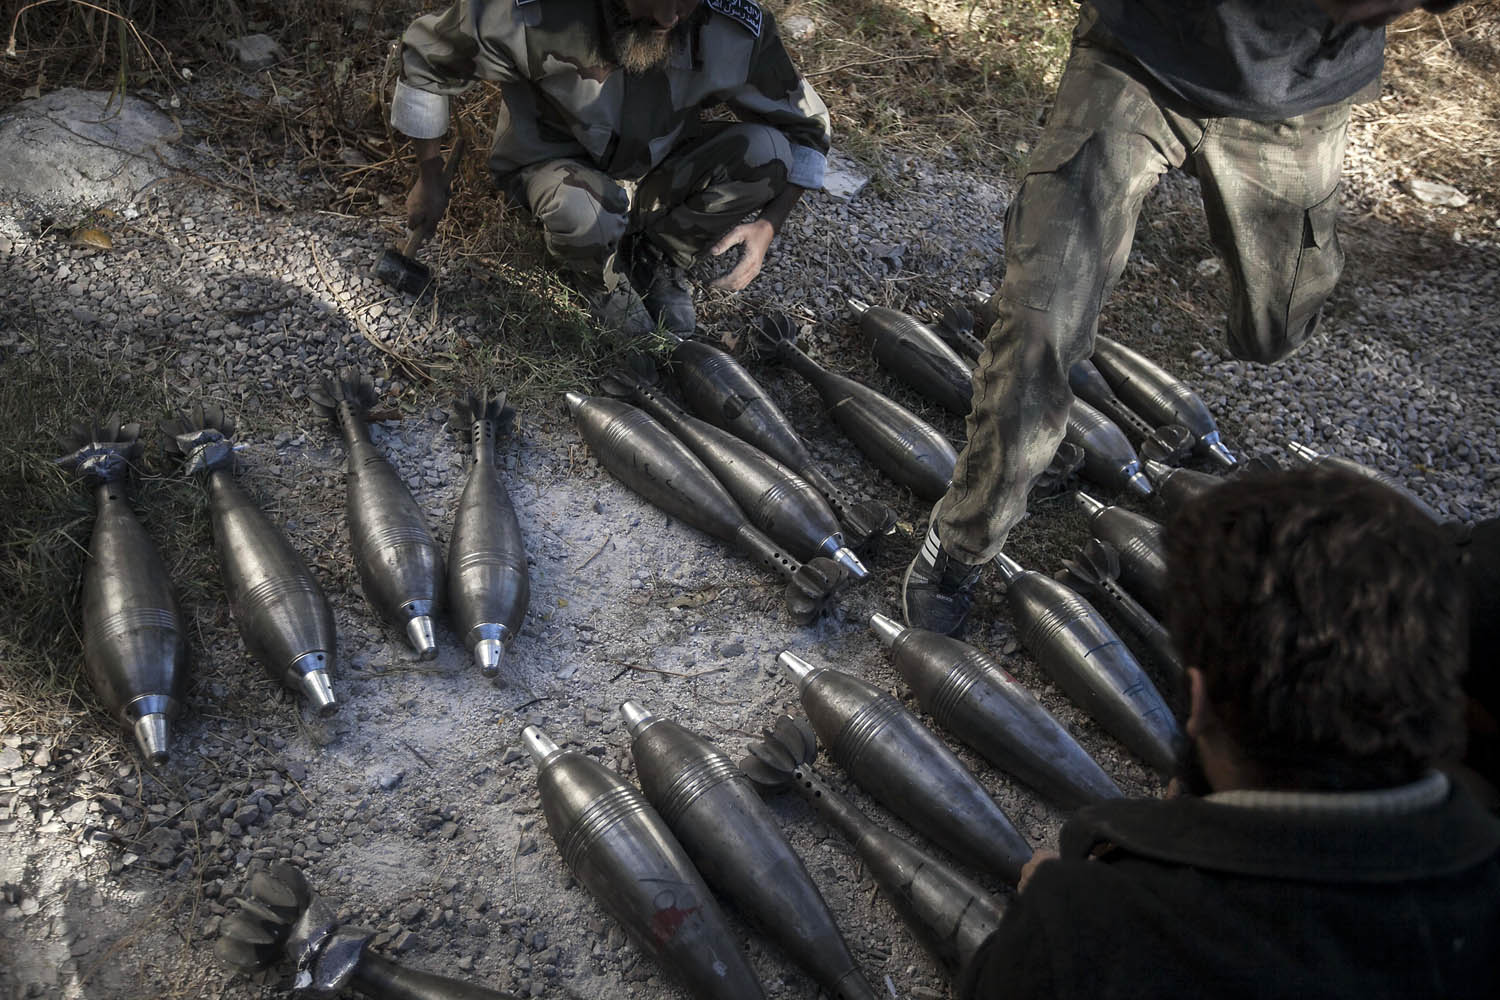 Oct. 07, 2013. Opposition fighters prepare loads of mortars during an attack in the Wadi al-Deef military post at the frontline in Maaret al-Numan in the Idlib province countryside of Syria.